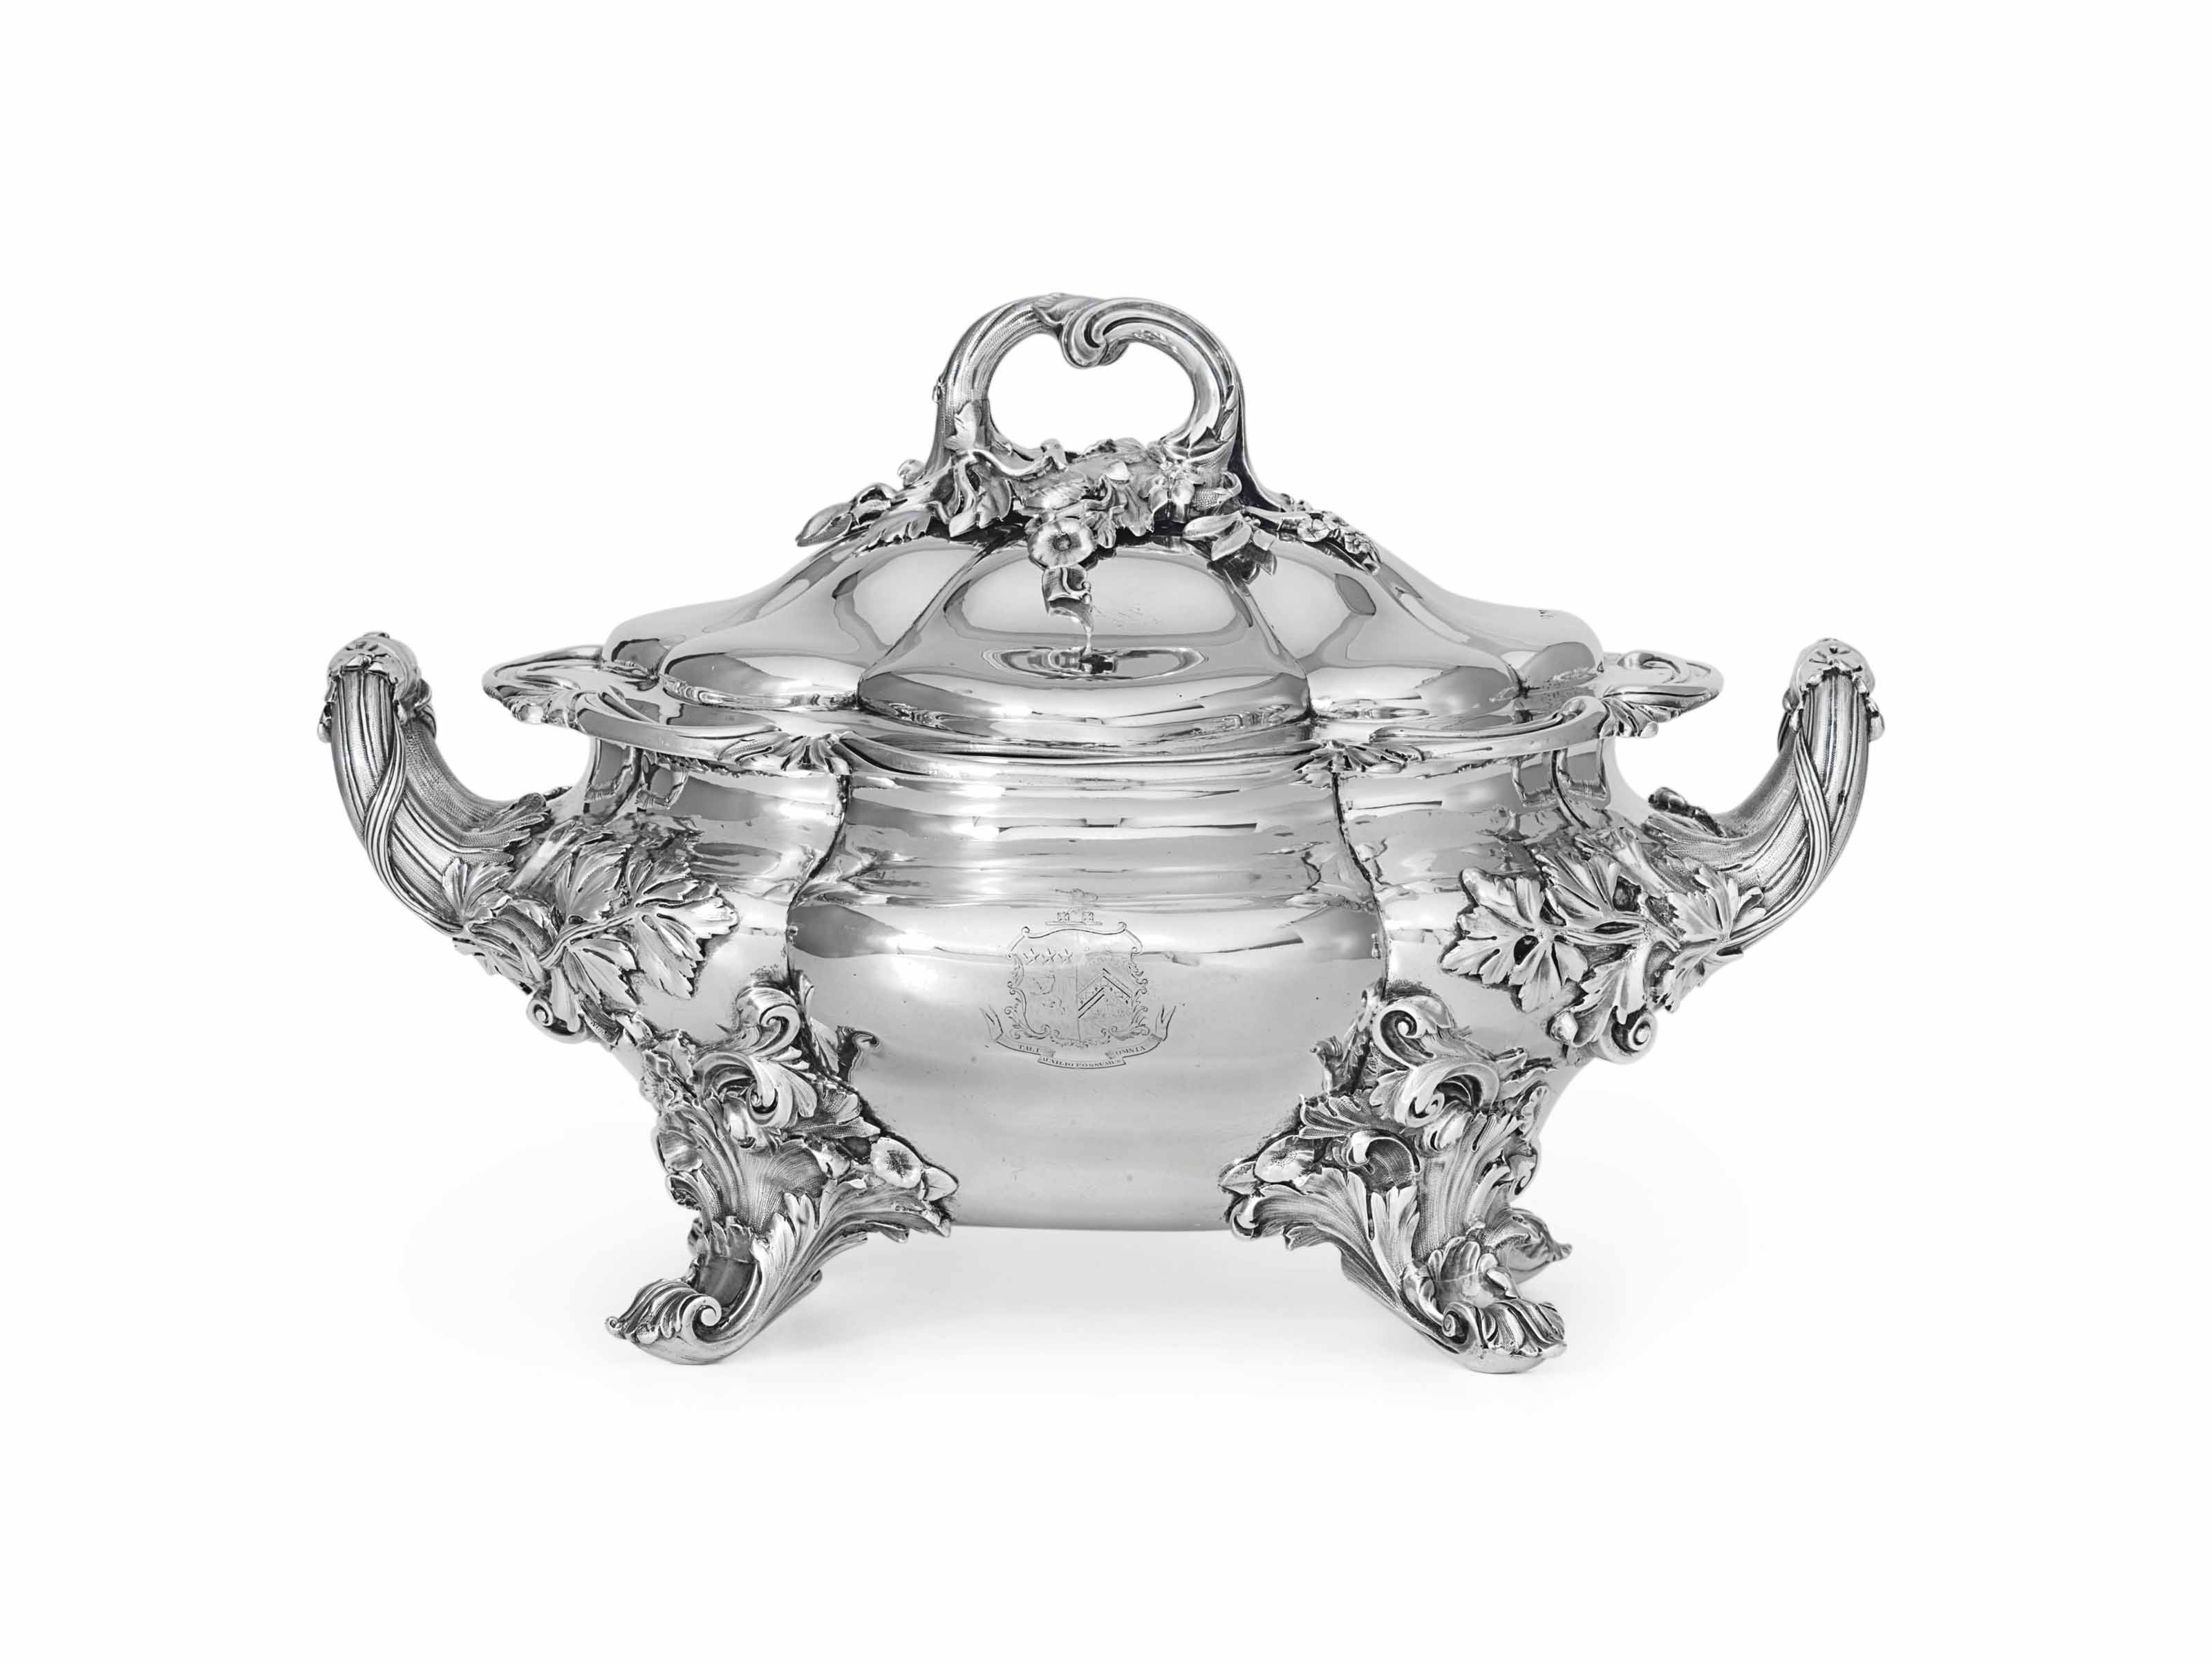 AN EARLY VICTORIAN SILVER SOUP TUREEN